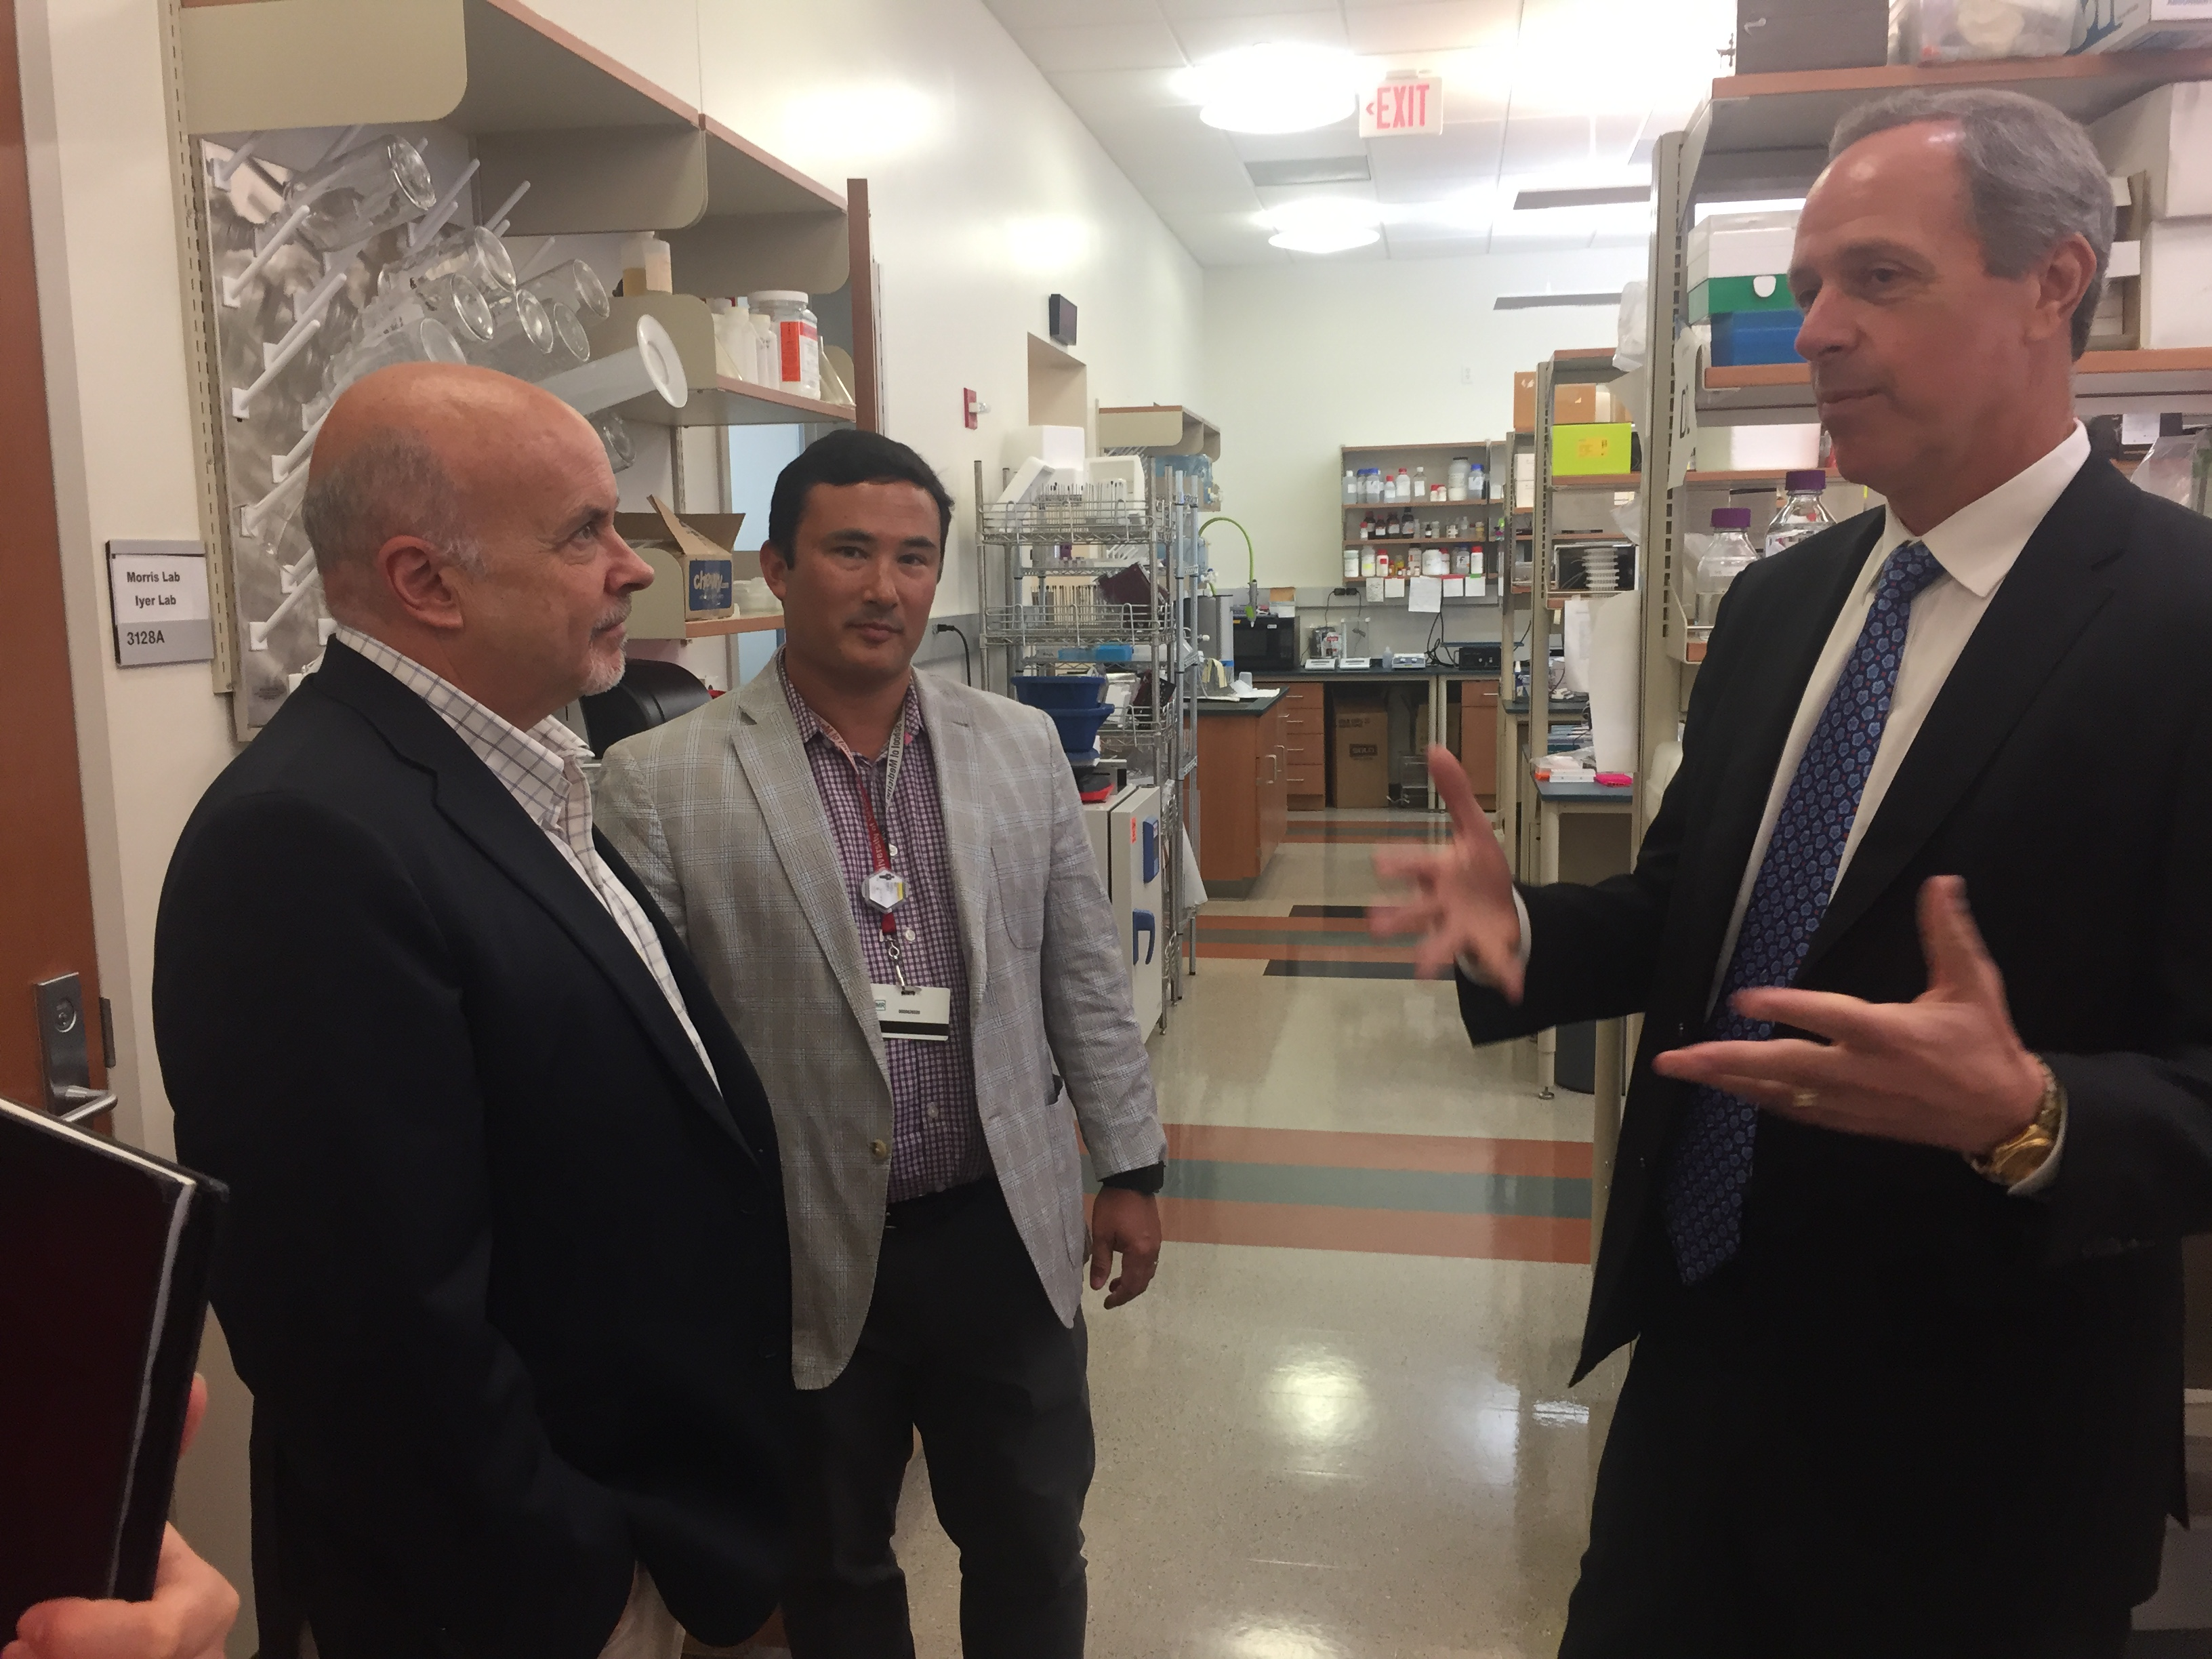 U.S. Rep. Mark Pocan talk with DHO Associate Professor Randy Simple and DHO Chairman Dr. Paul Harari